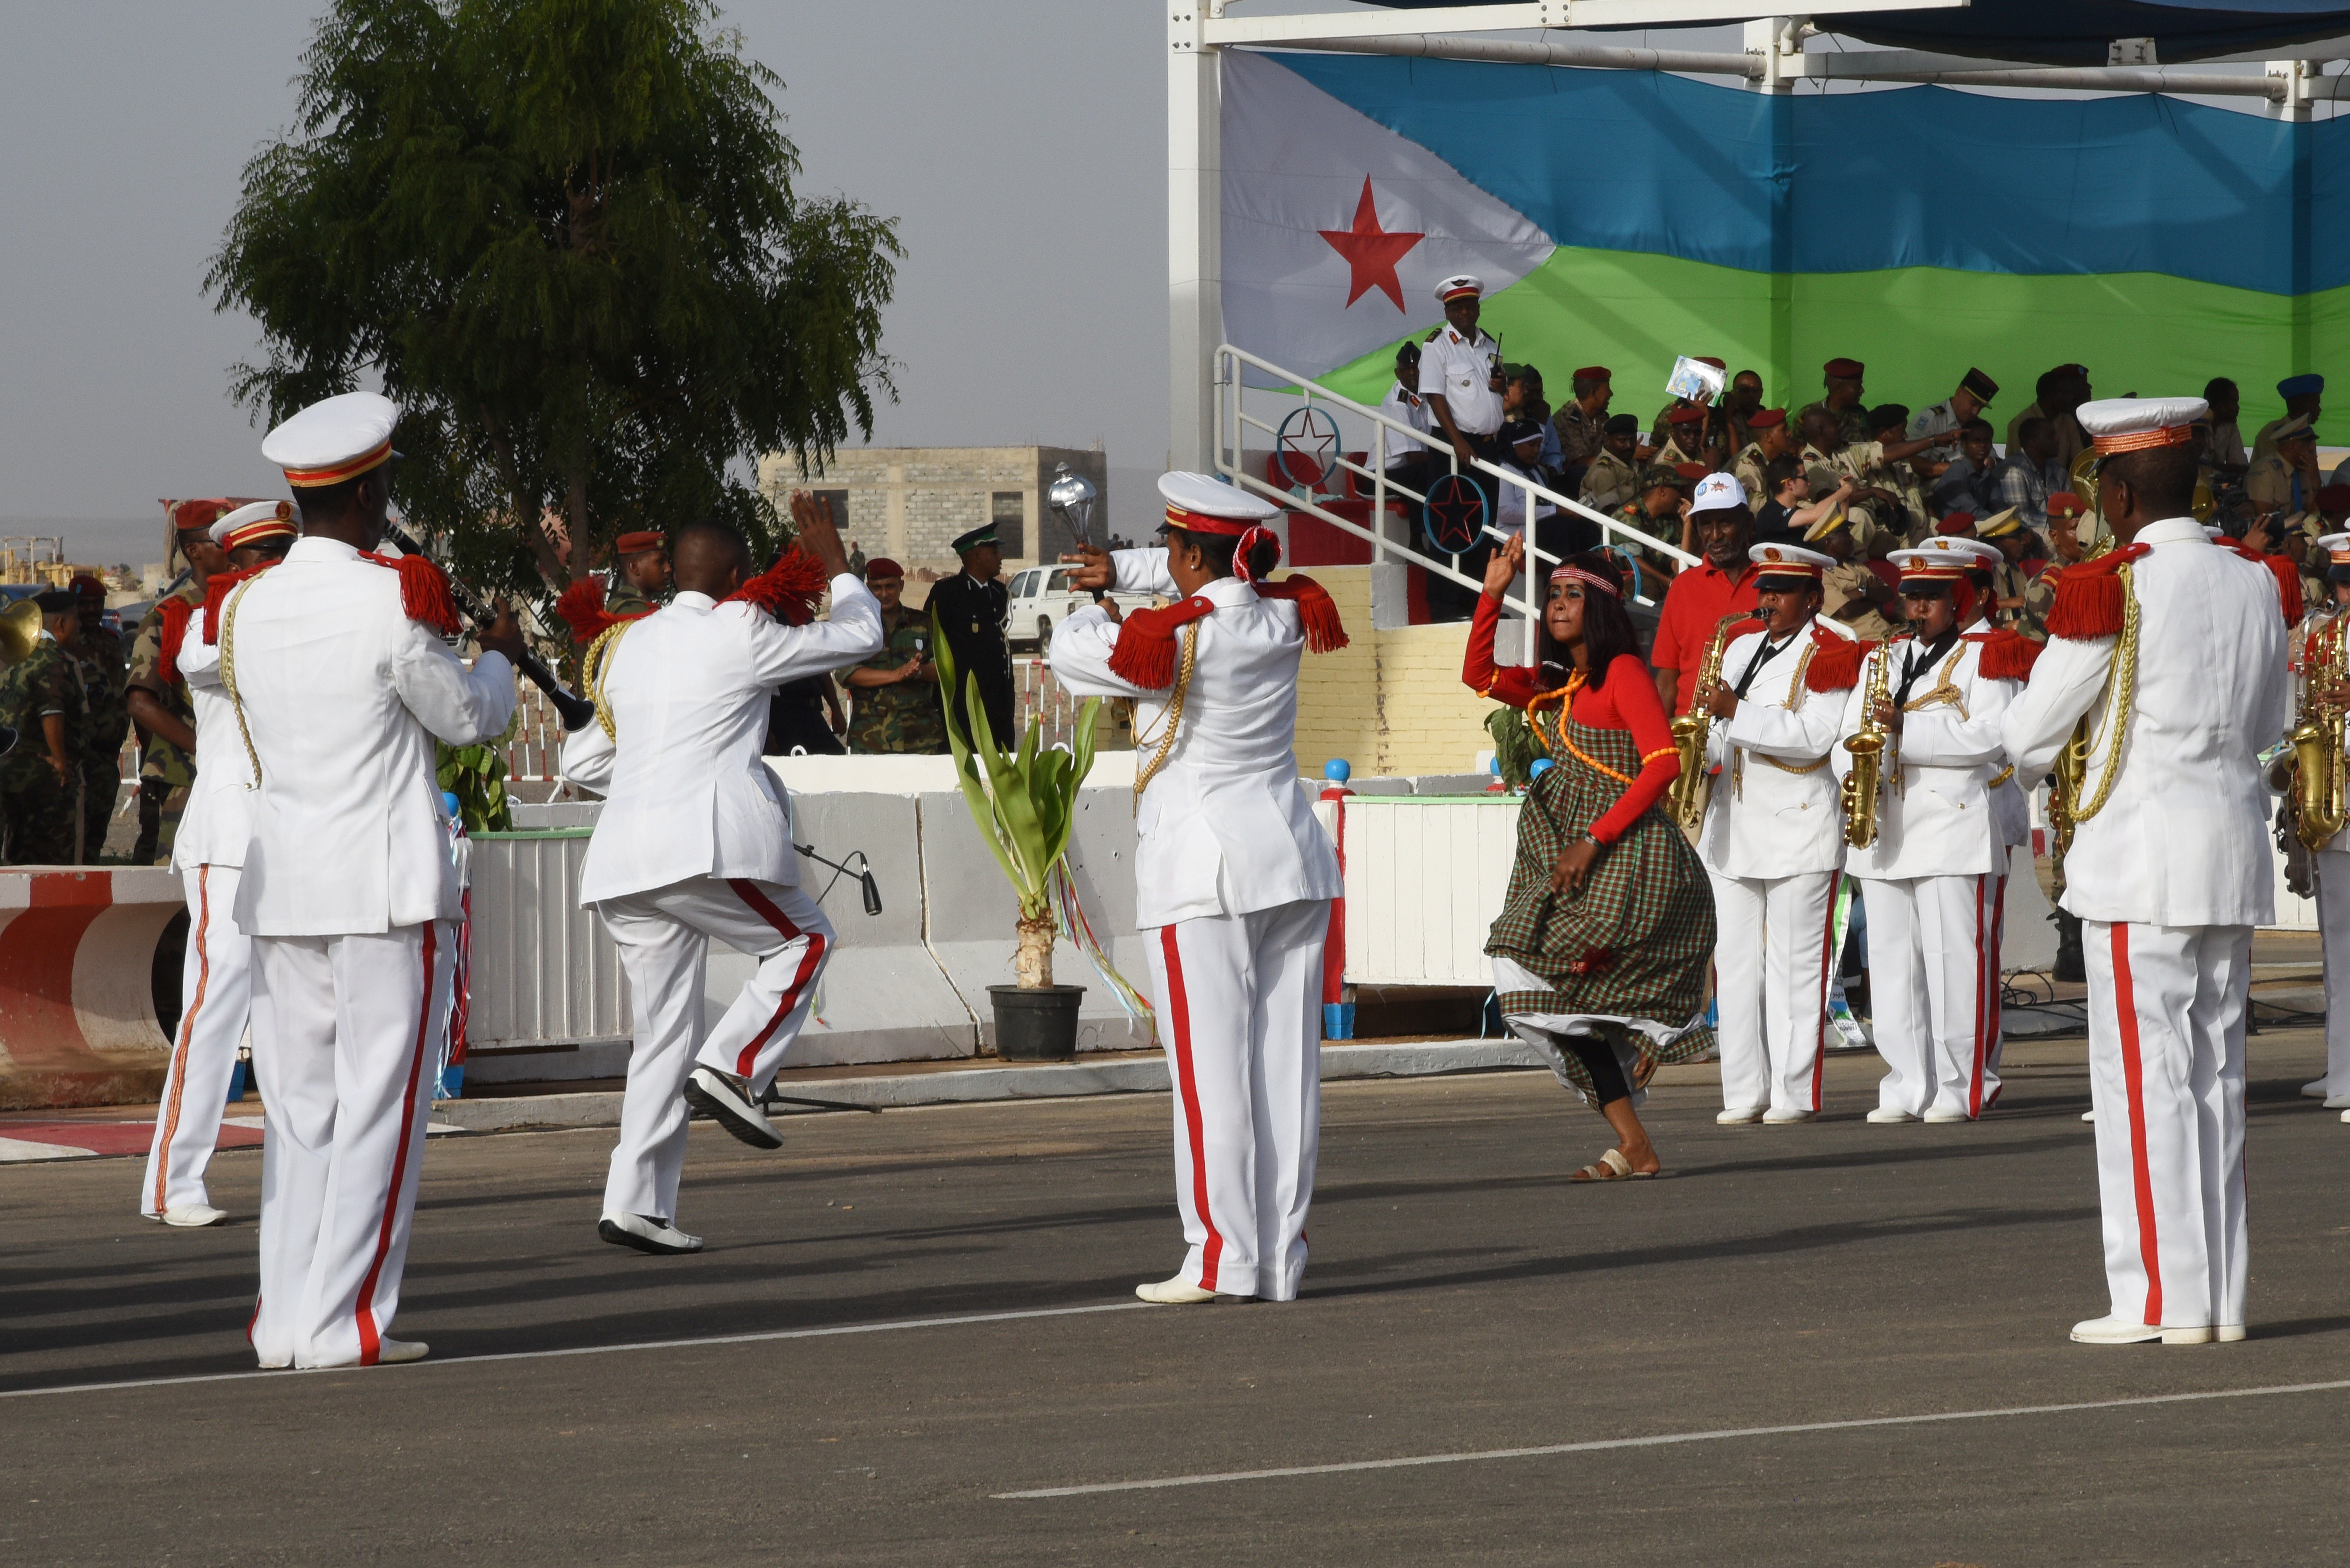 Marching band members play music and dance during a Djibouti independence day celebration June 27, 2015, commemorating the 38th anniversary of Djibouti becoming a sovereign nation. Djibouti's military, law enforcement and civil servants marched along the parade route, while the band played festive songs.  (U.S. Air Force photos by Staff Sgt. Maria Bowman)